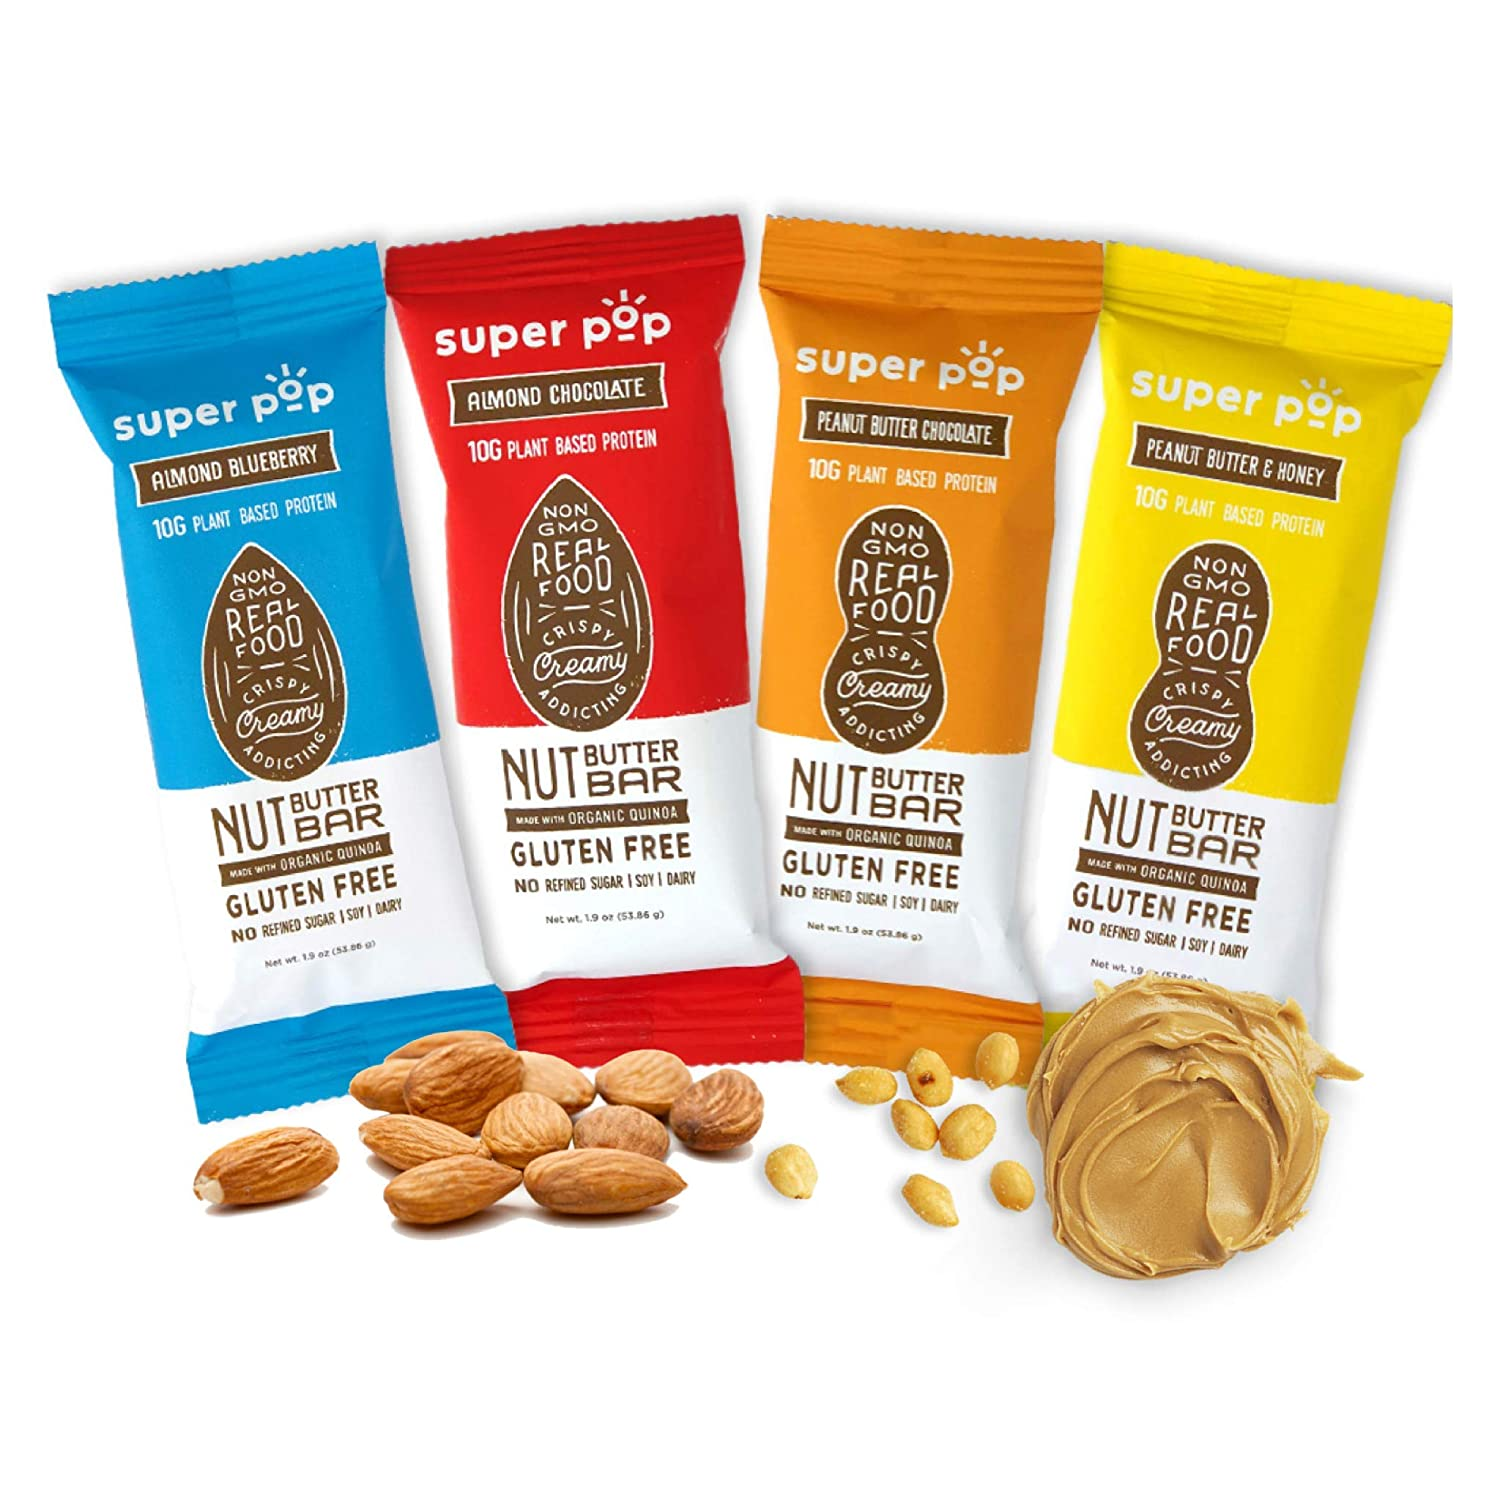 Super Pop Snacks, Clean Plant Based Protein Bars, All-Natural Nut Butter Bars With Organic Whole Foods, Delicious, Meal Replacement, Gluten Free, Soy Free, Dairy Free, 10g Protein, Variety Pack (8 Pack)